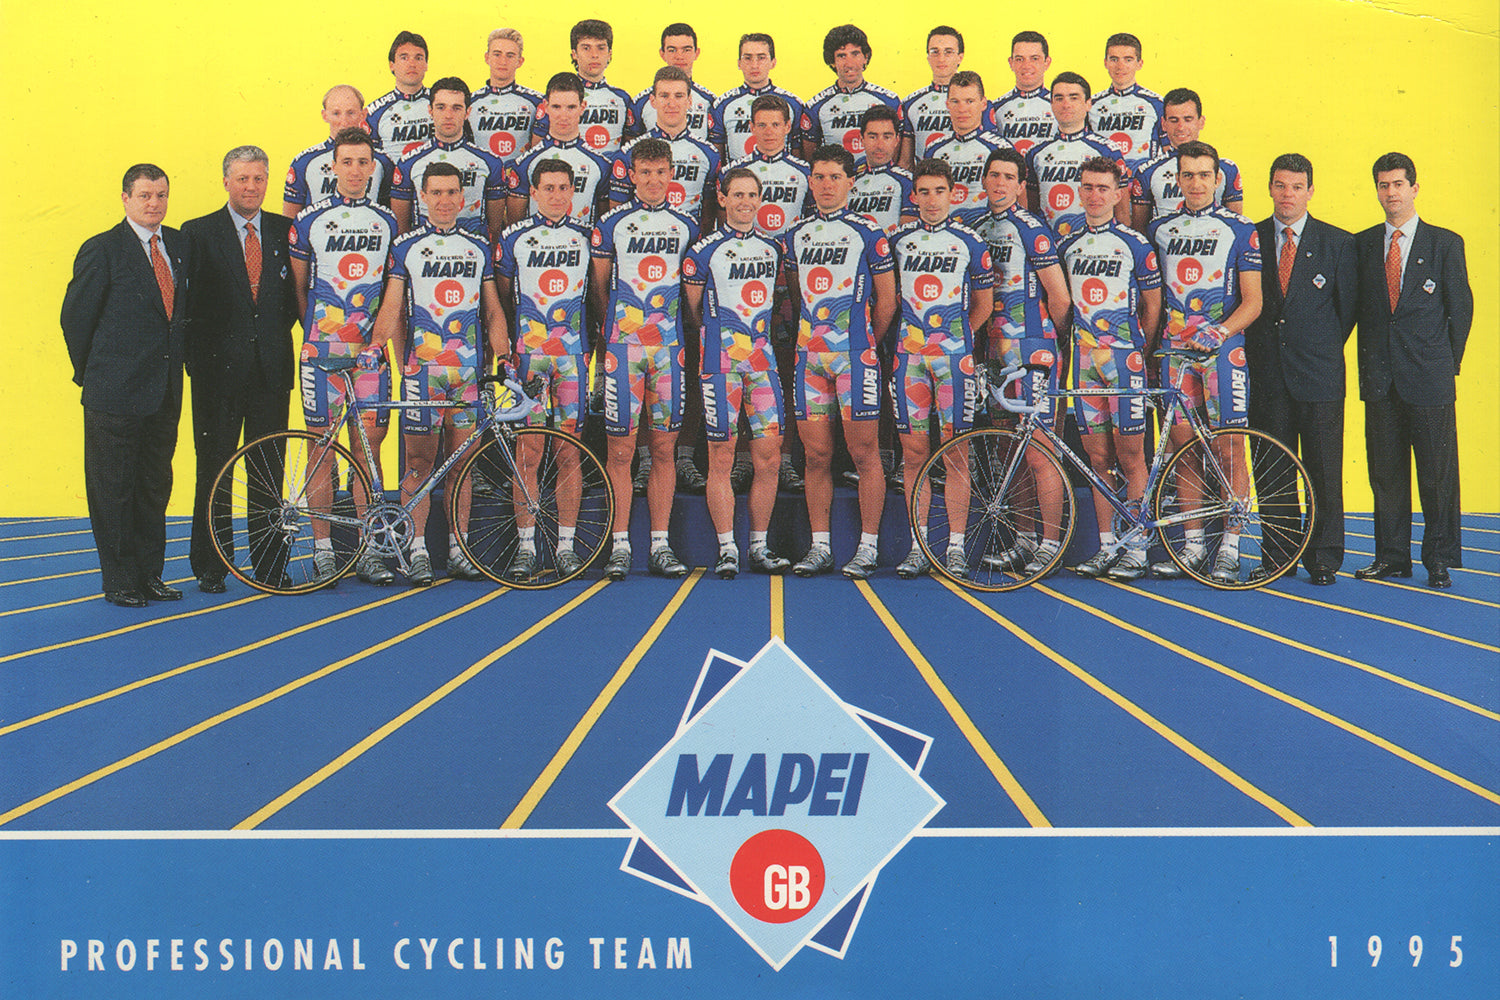 The MAPEI-GB cycling team postcard from the 1995 season with sponsors Mapei, GB, Latexco, Shimano, Colnago, Sportful, Briko and Enervit.